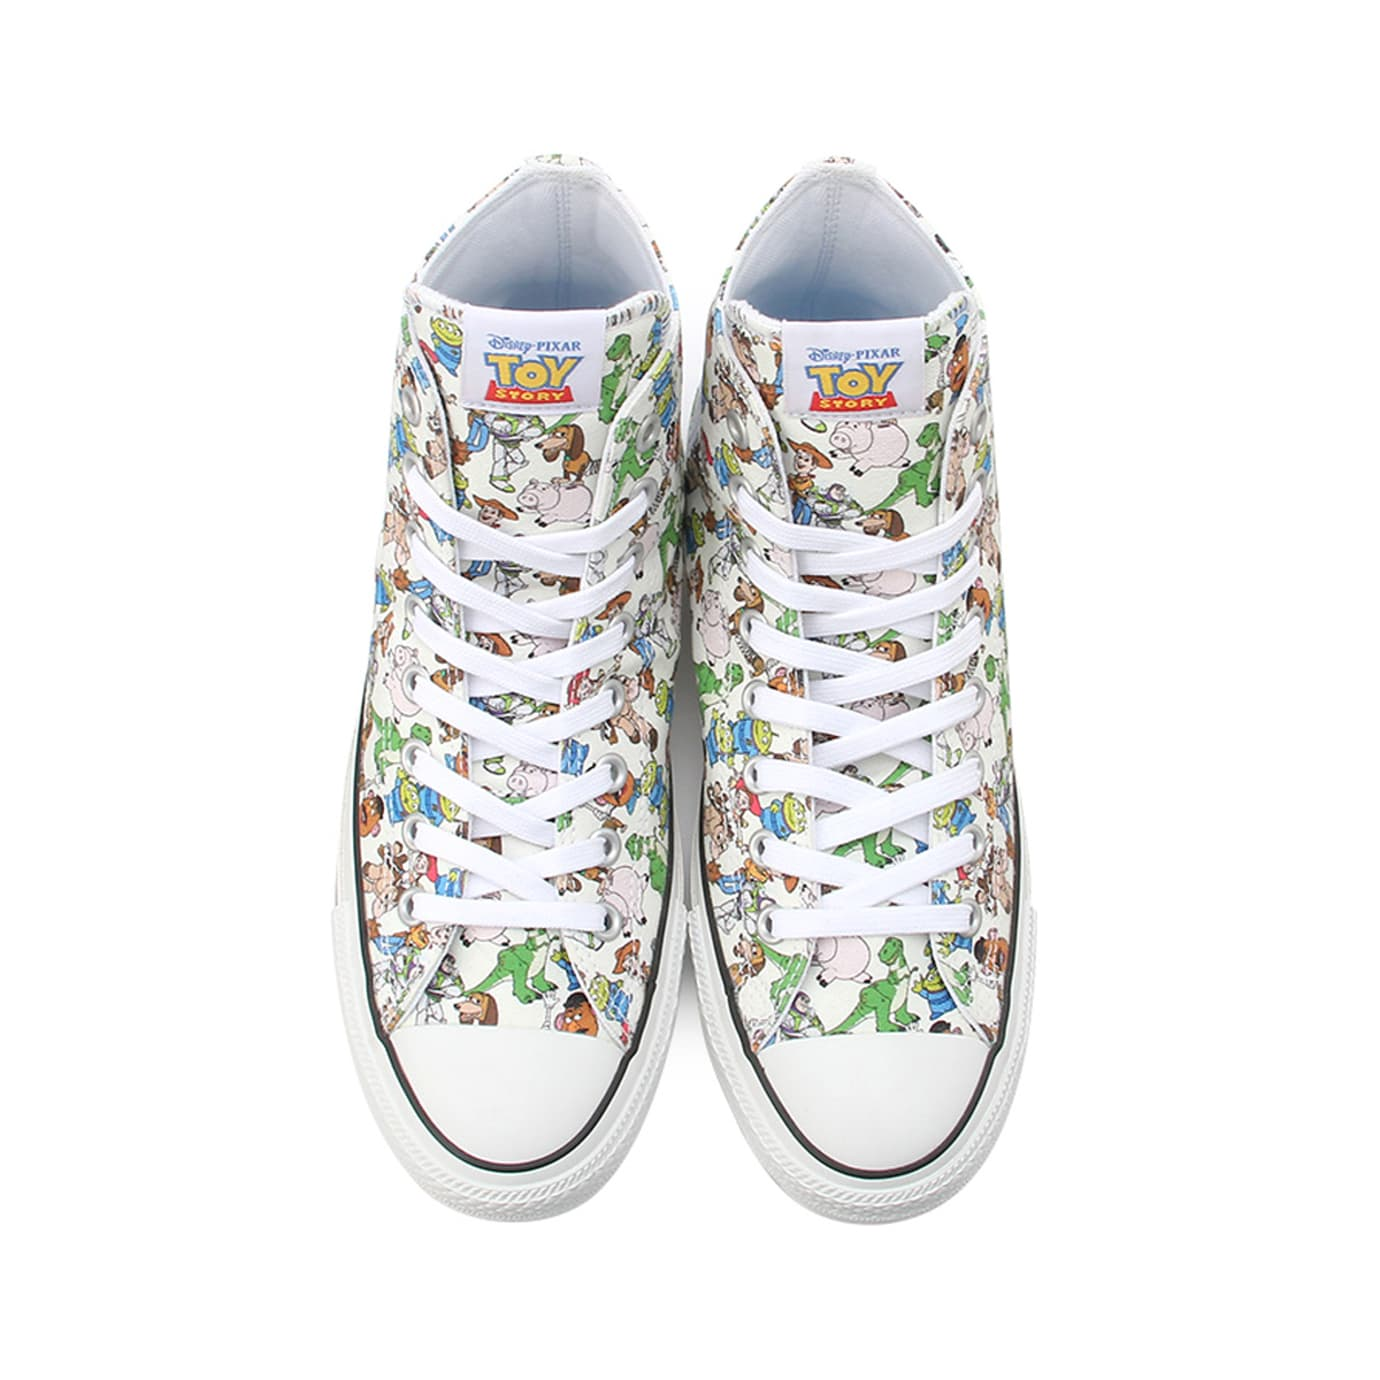 37bf3b1ee3 Image via atmos · Toy Story x Converse Chuck Taylor All Star 329616600 3